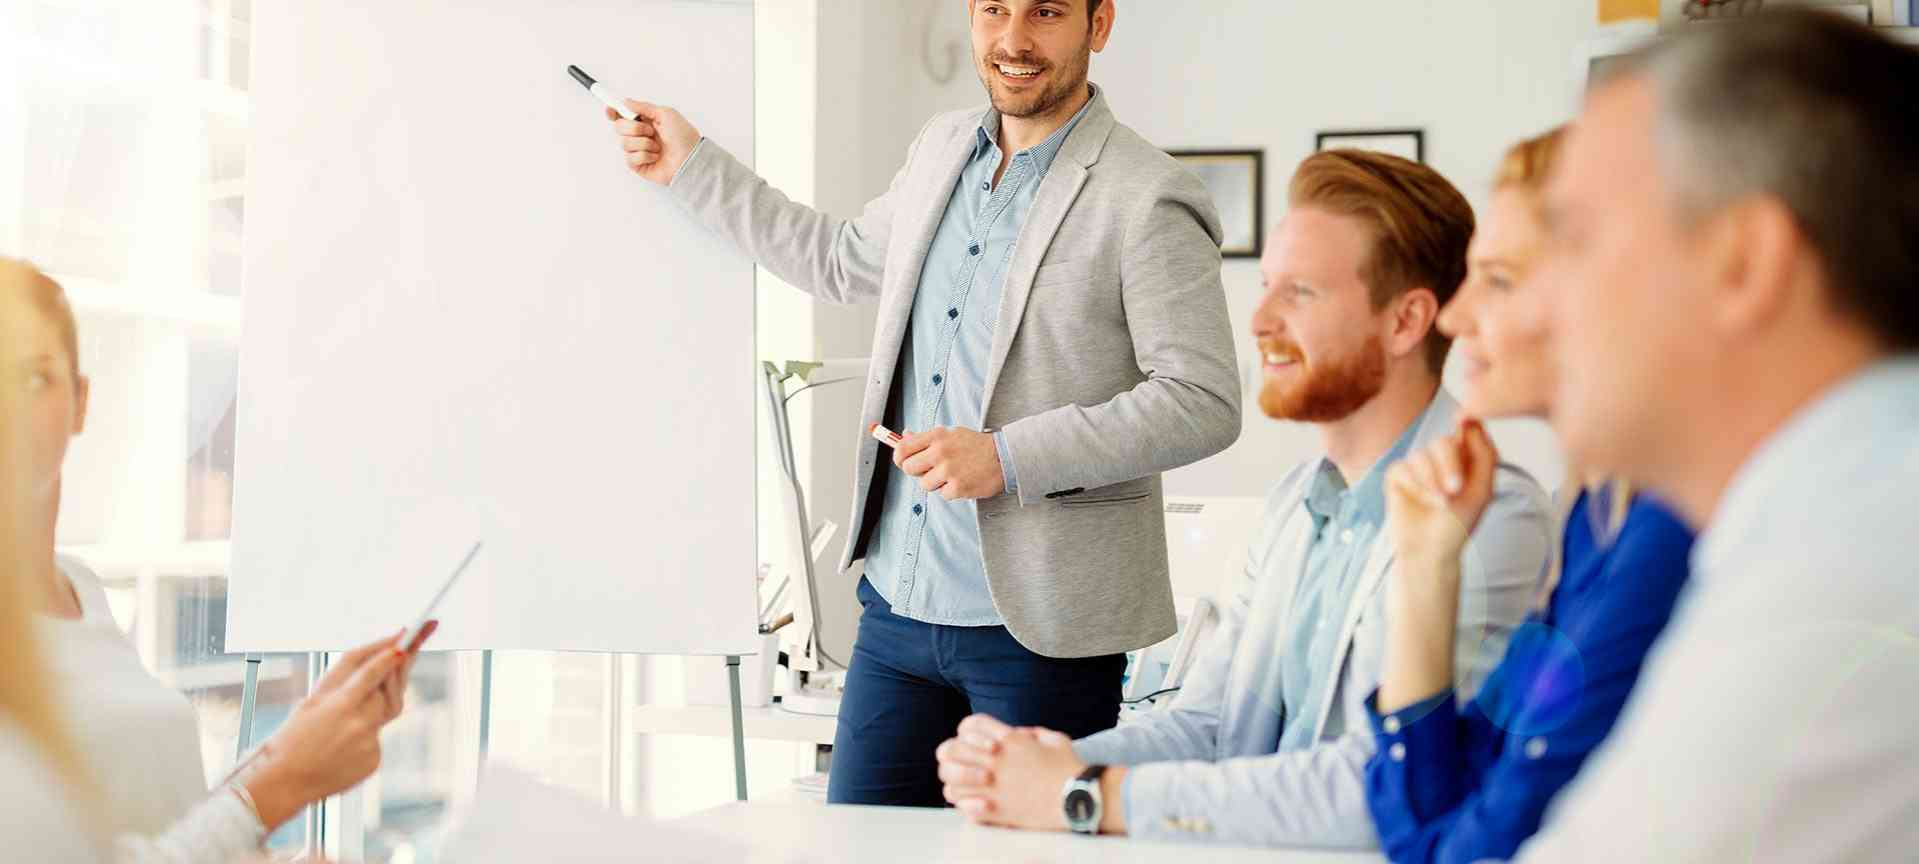 Aher Consulting Group - User Training services